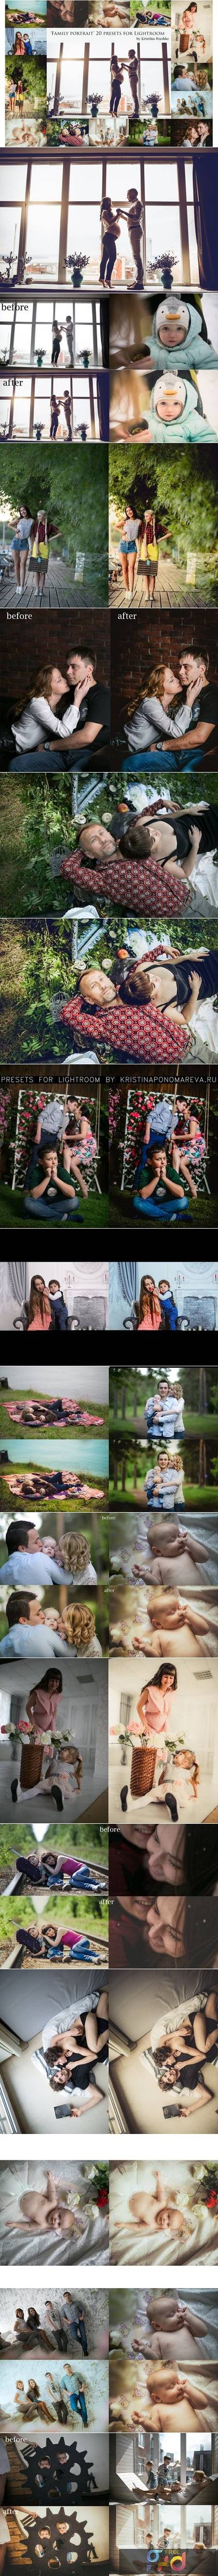 Lightroom presets for family photos 5250143 1